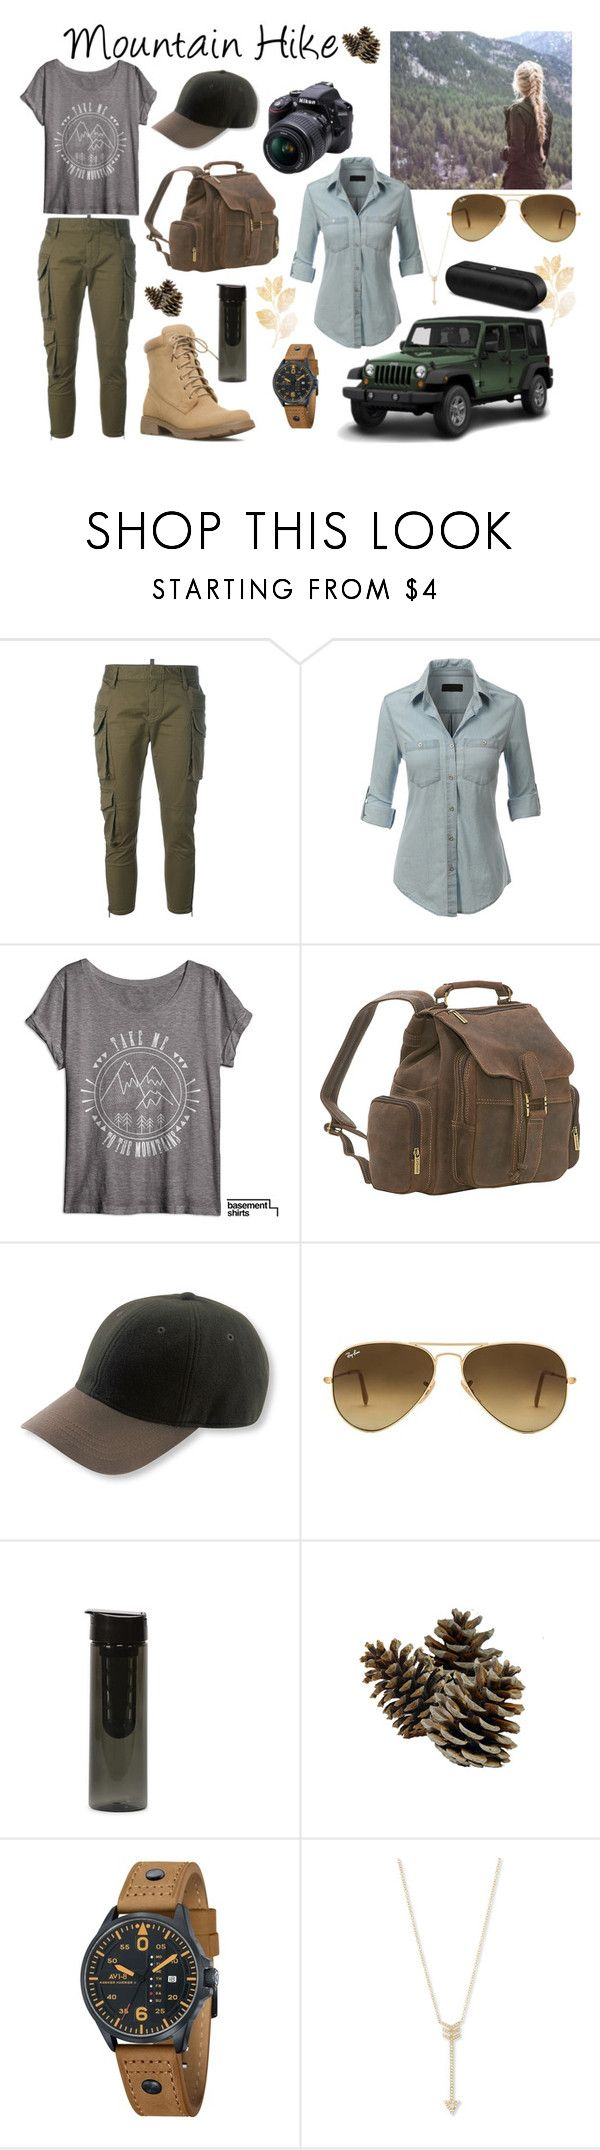 """""""Mountain Hike"""" by kay-hair on Polyvore featuring Dsquared2, LE3NO, Le Donne, L.L.Bean, Ray-Ban, Wrangler, Nikon, AVI-8, EF Collection and Beats by Dr. Dre"""